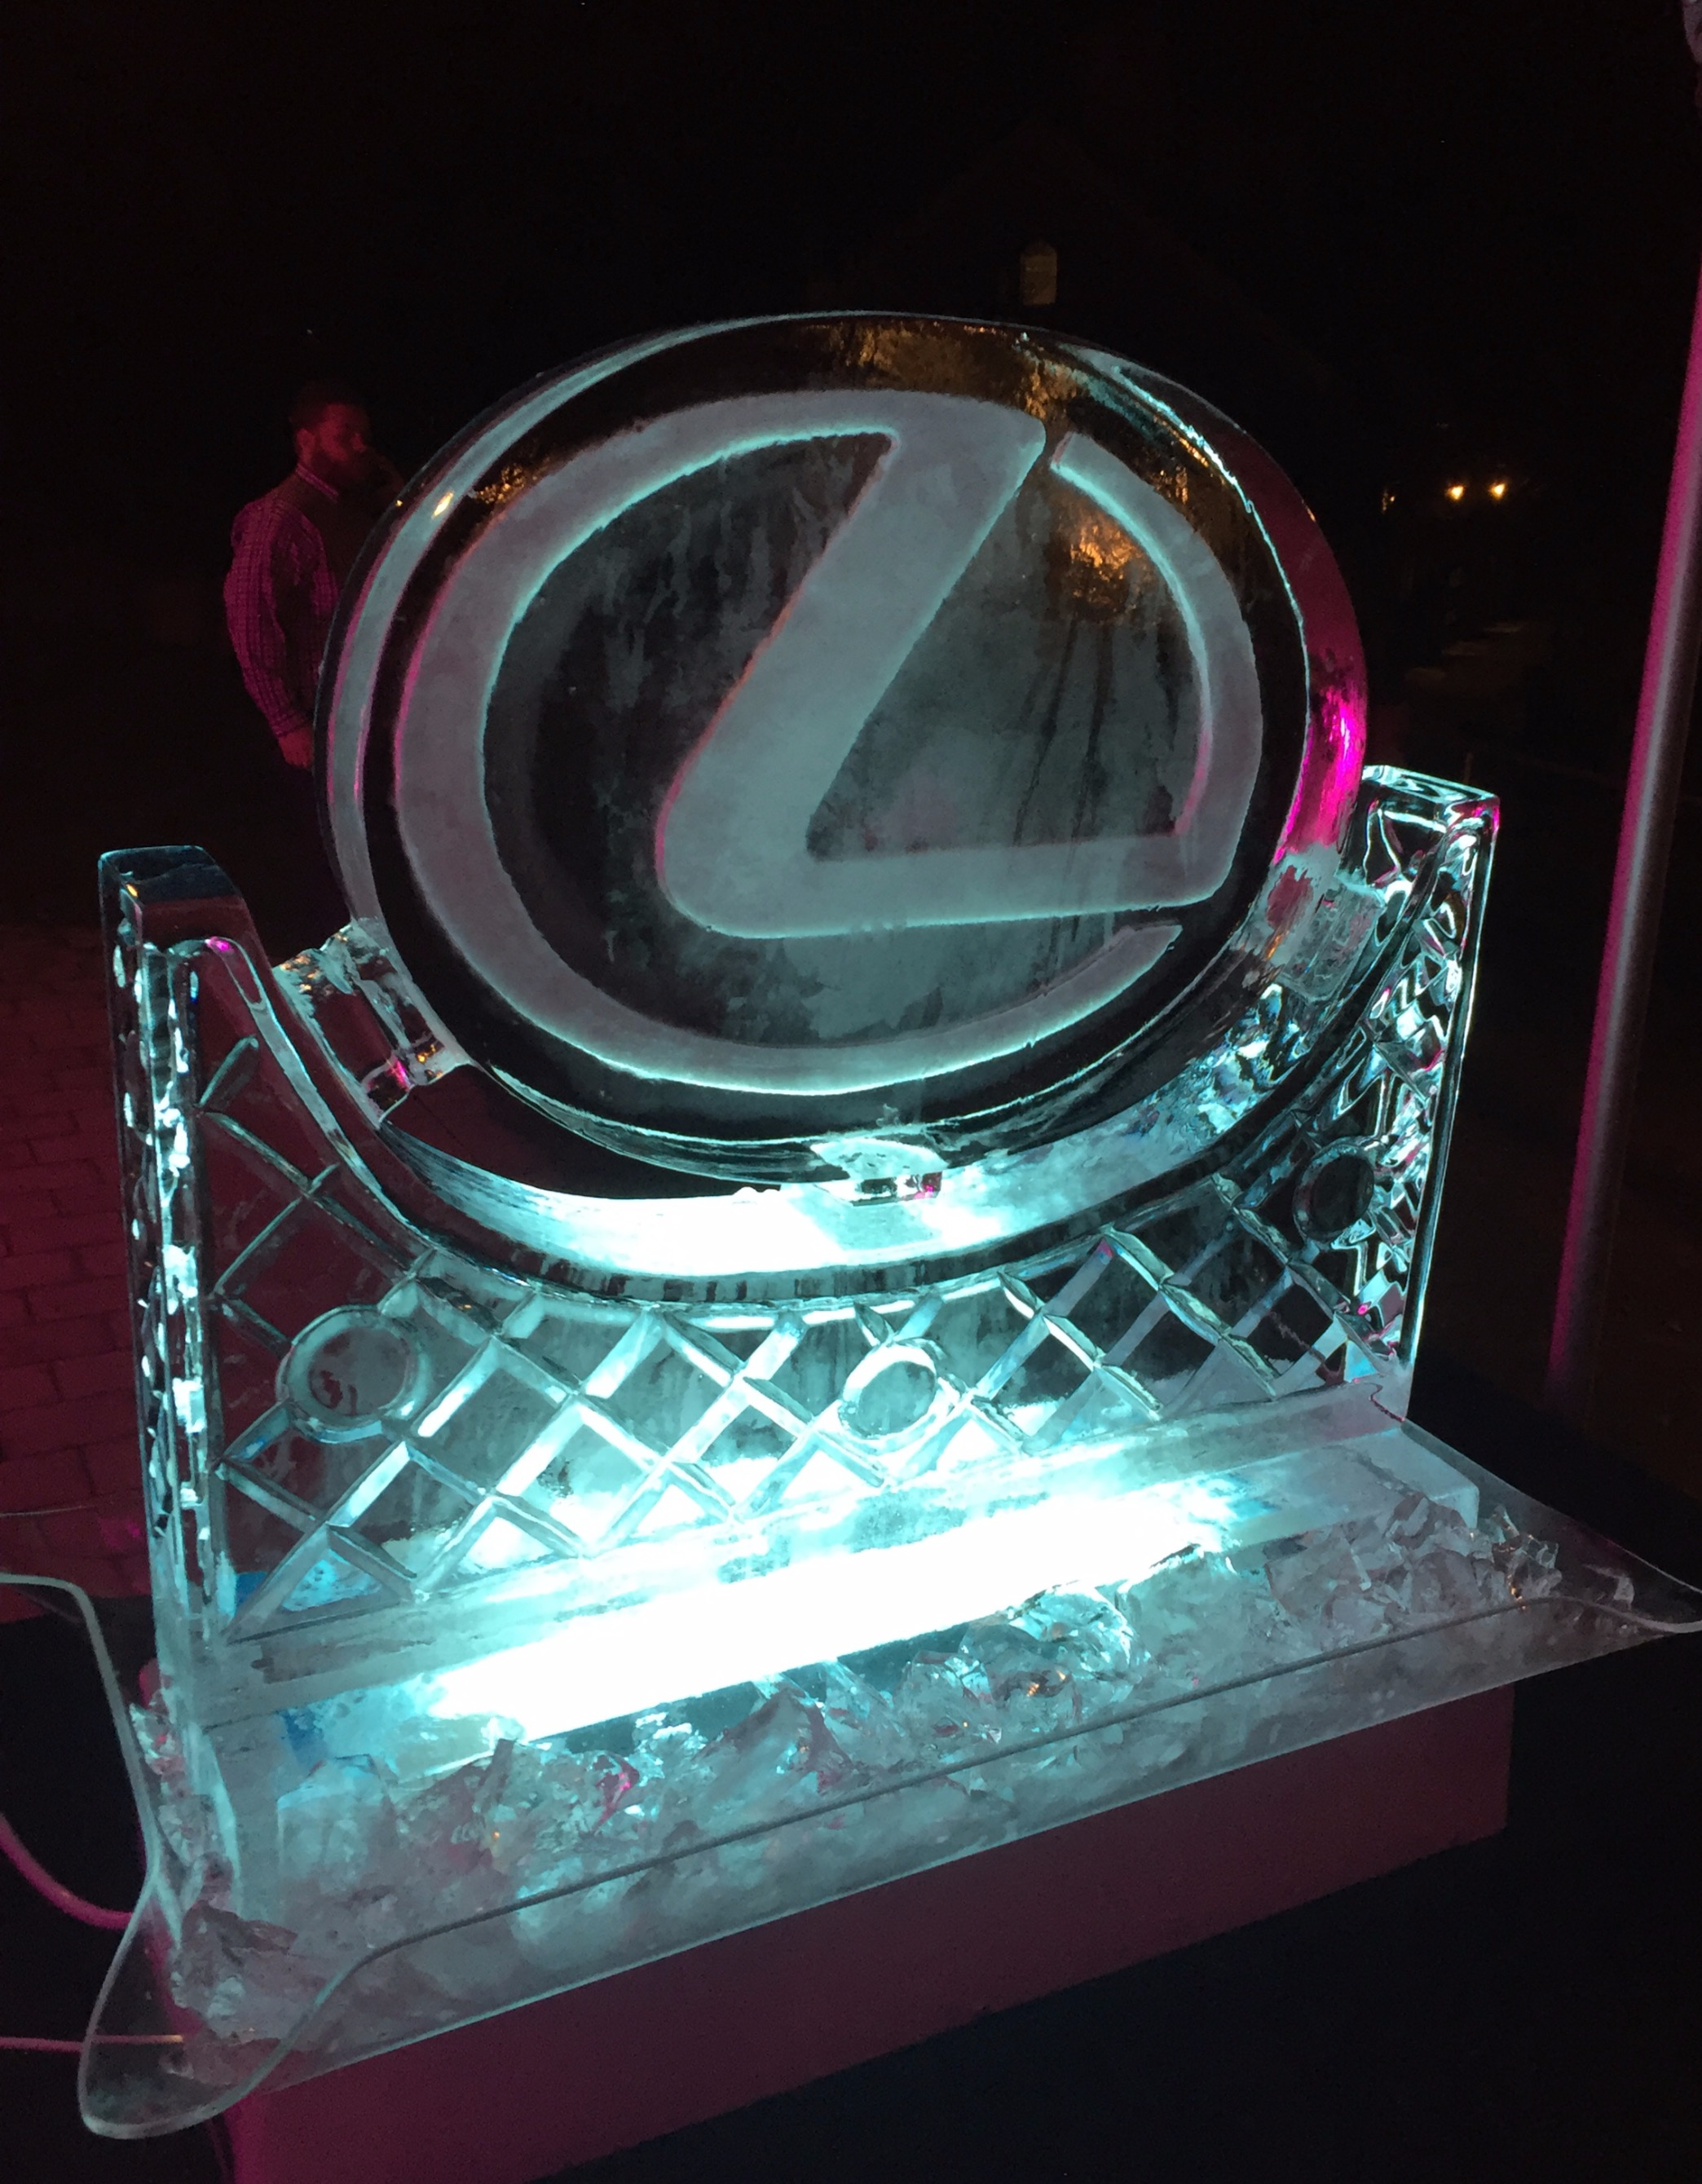 Lexus ice sculpture, launch party at Millbrook Queenstown